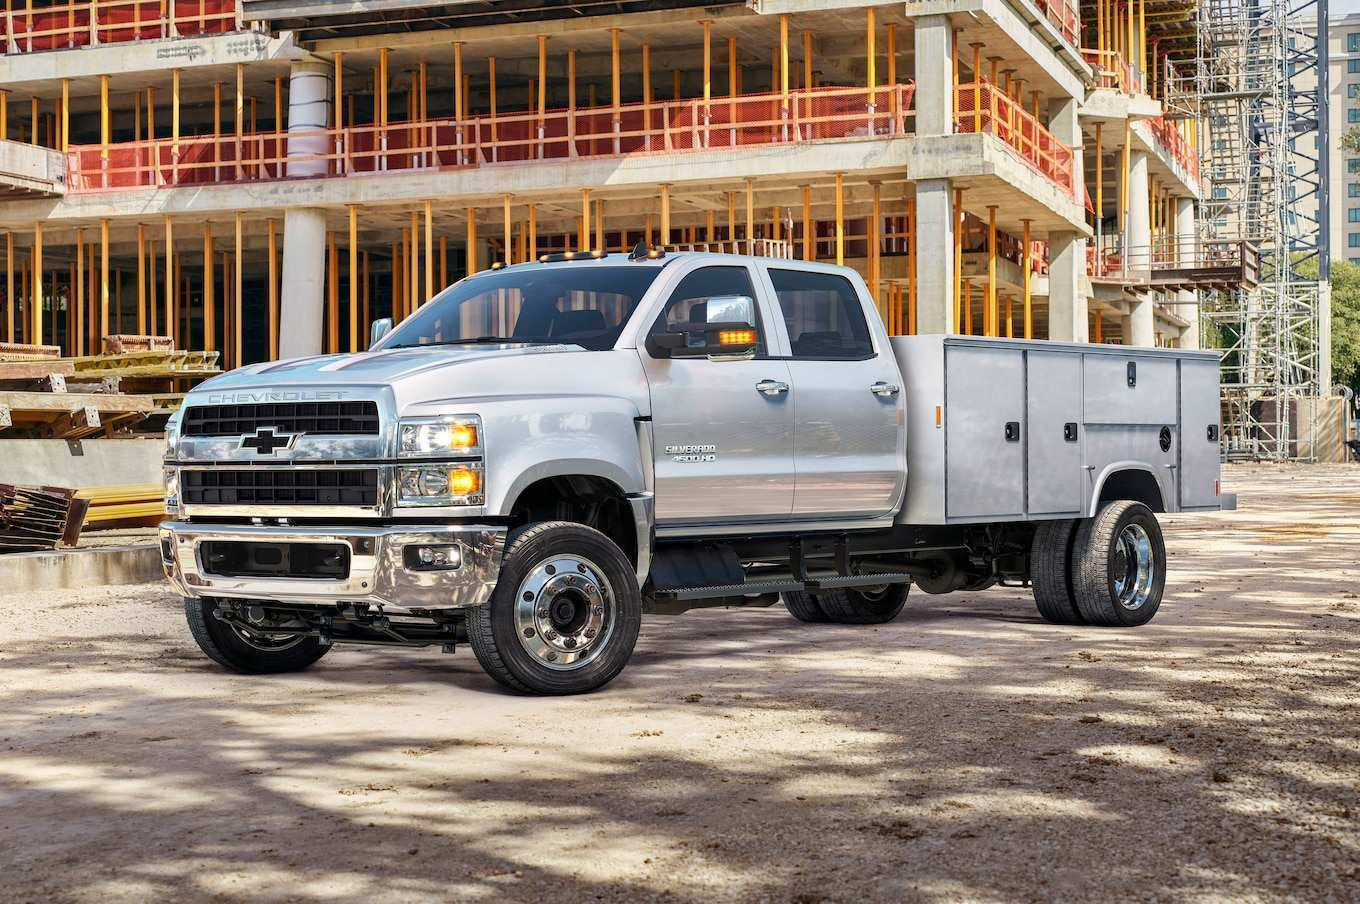 38 Gallery of 2019 Chevrolet Heavy Duty Spy Shoot for 2019 Chevrolet Heavy Duty